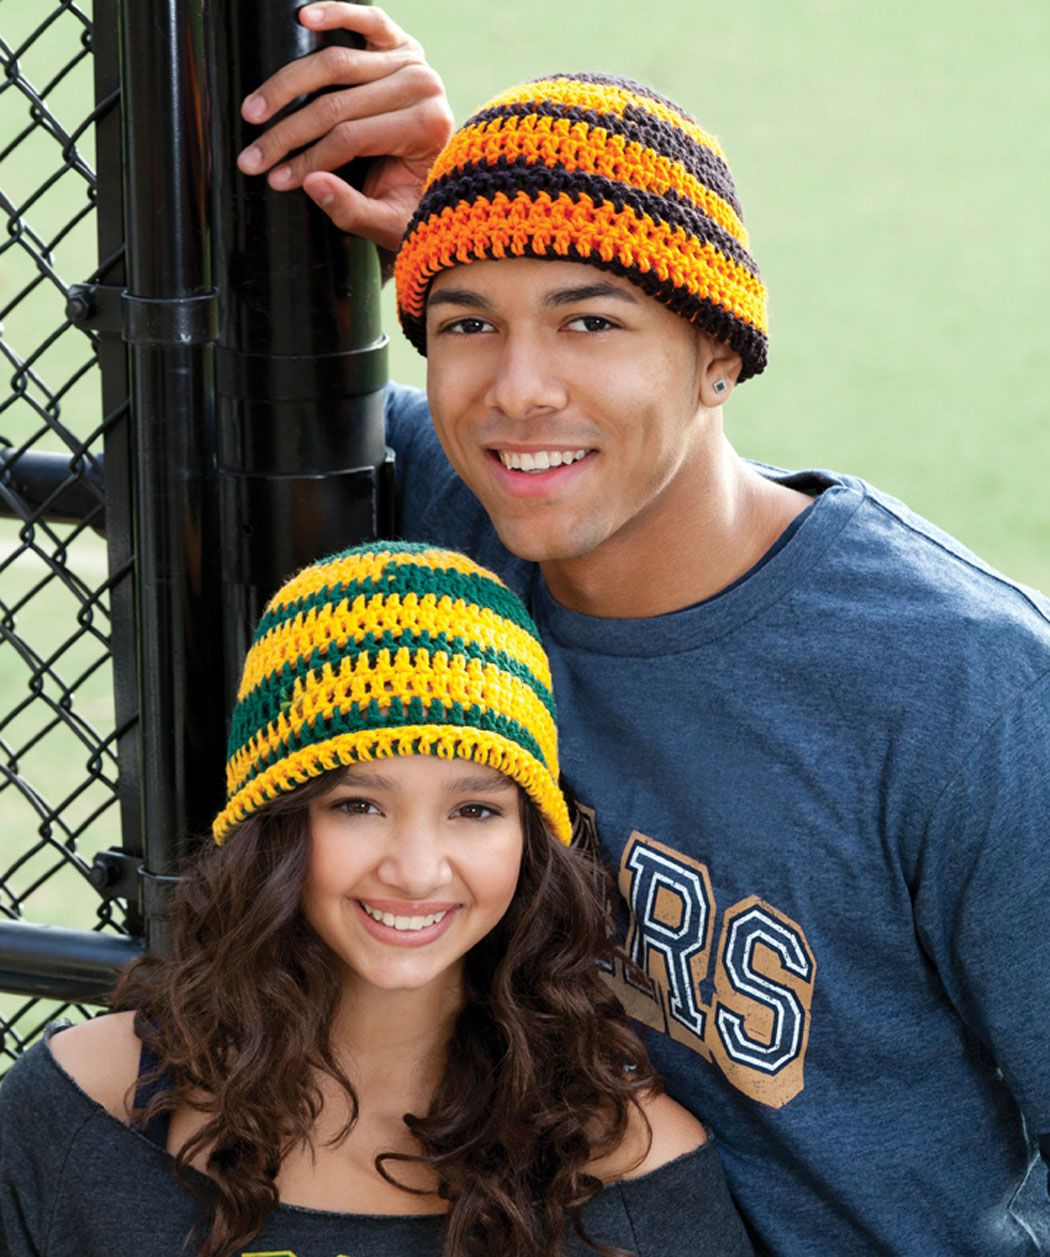 This yarn comes in favorite team colors to make it easy to show your spirit! This beginner crochet pattern is great for making hats for all your friends or for learning to crochet.